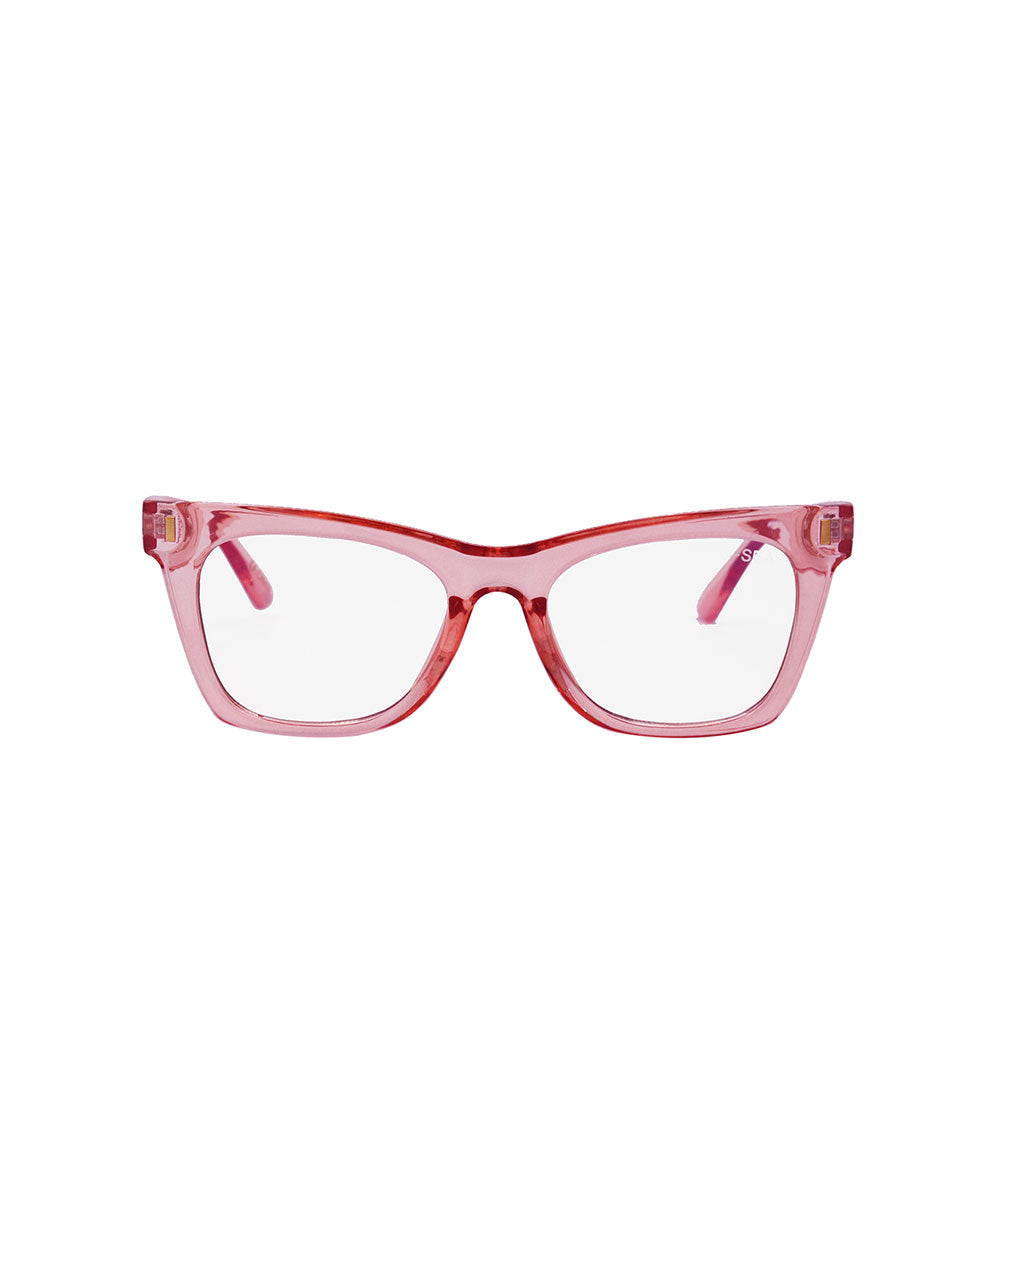 semi-transparent pink blue light glasses with cat eye like frame